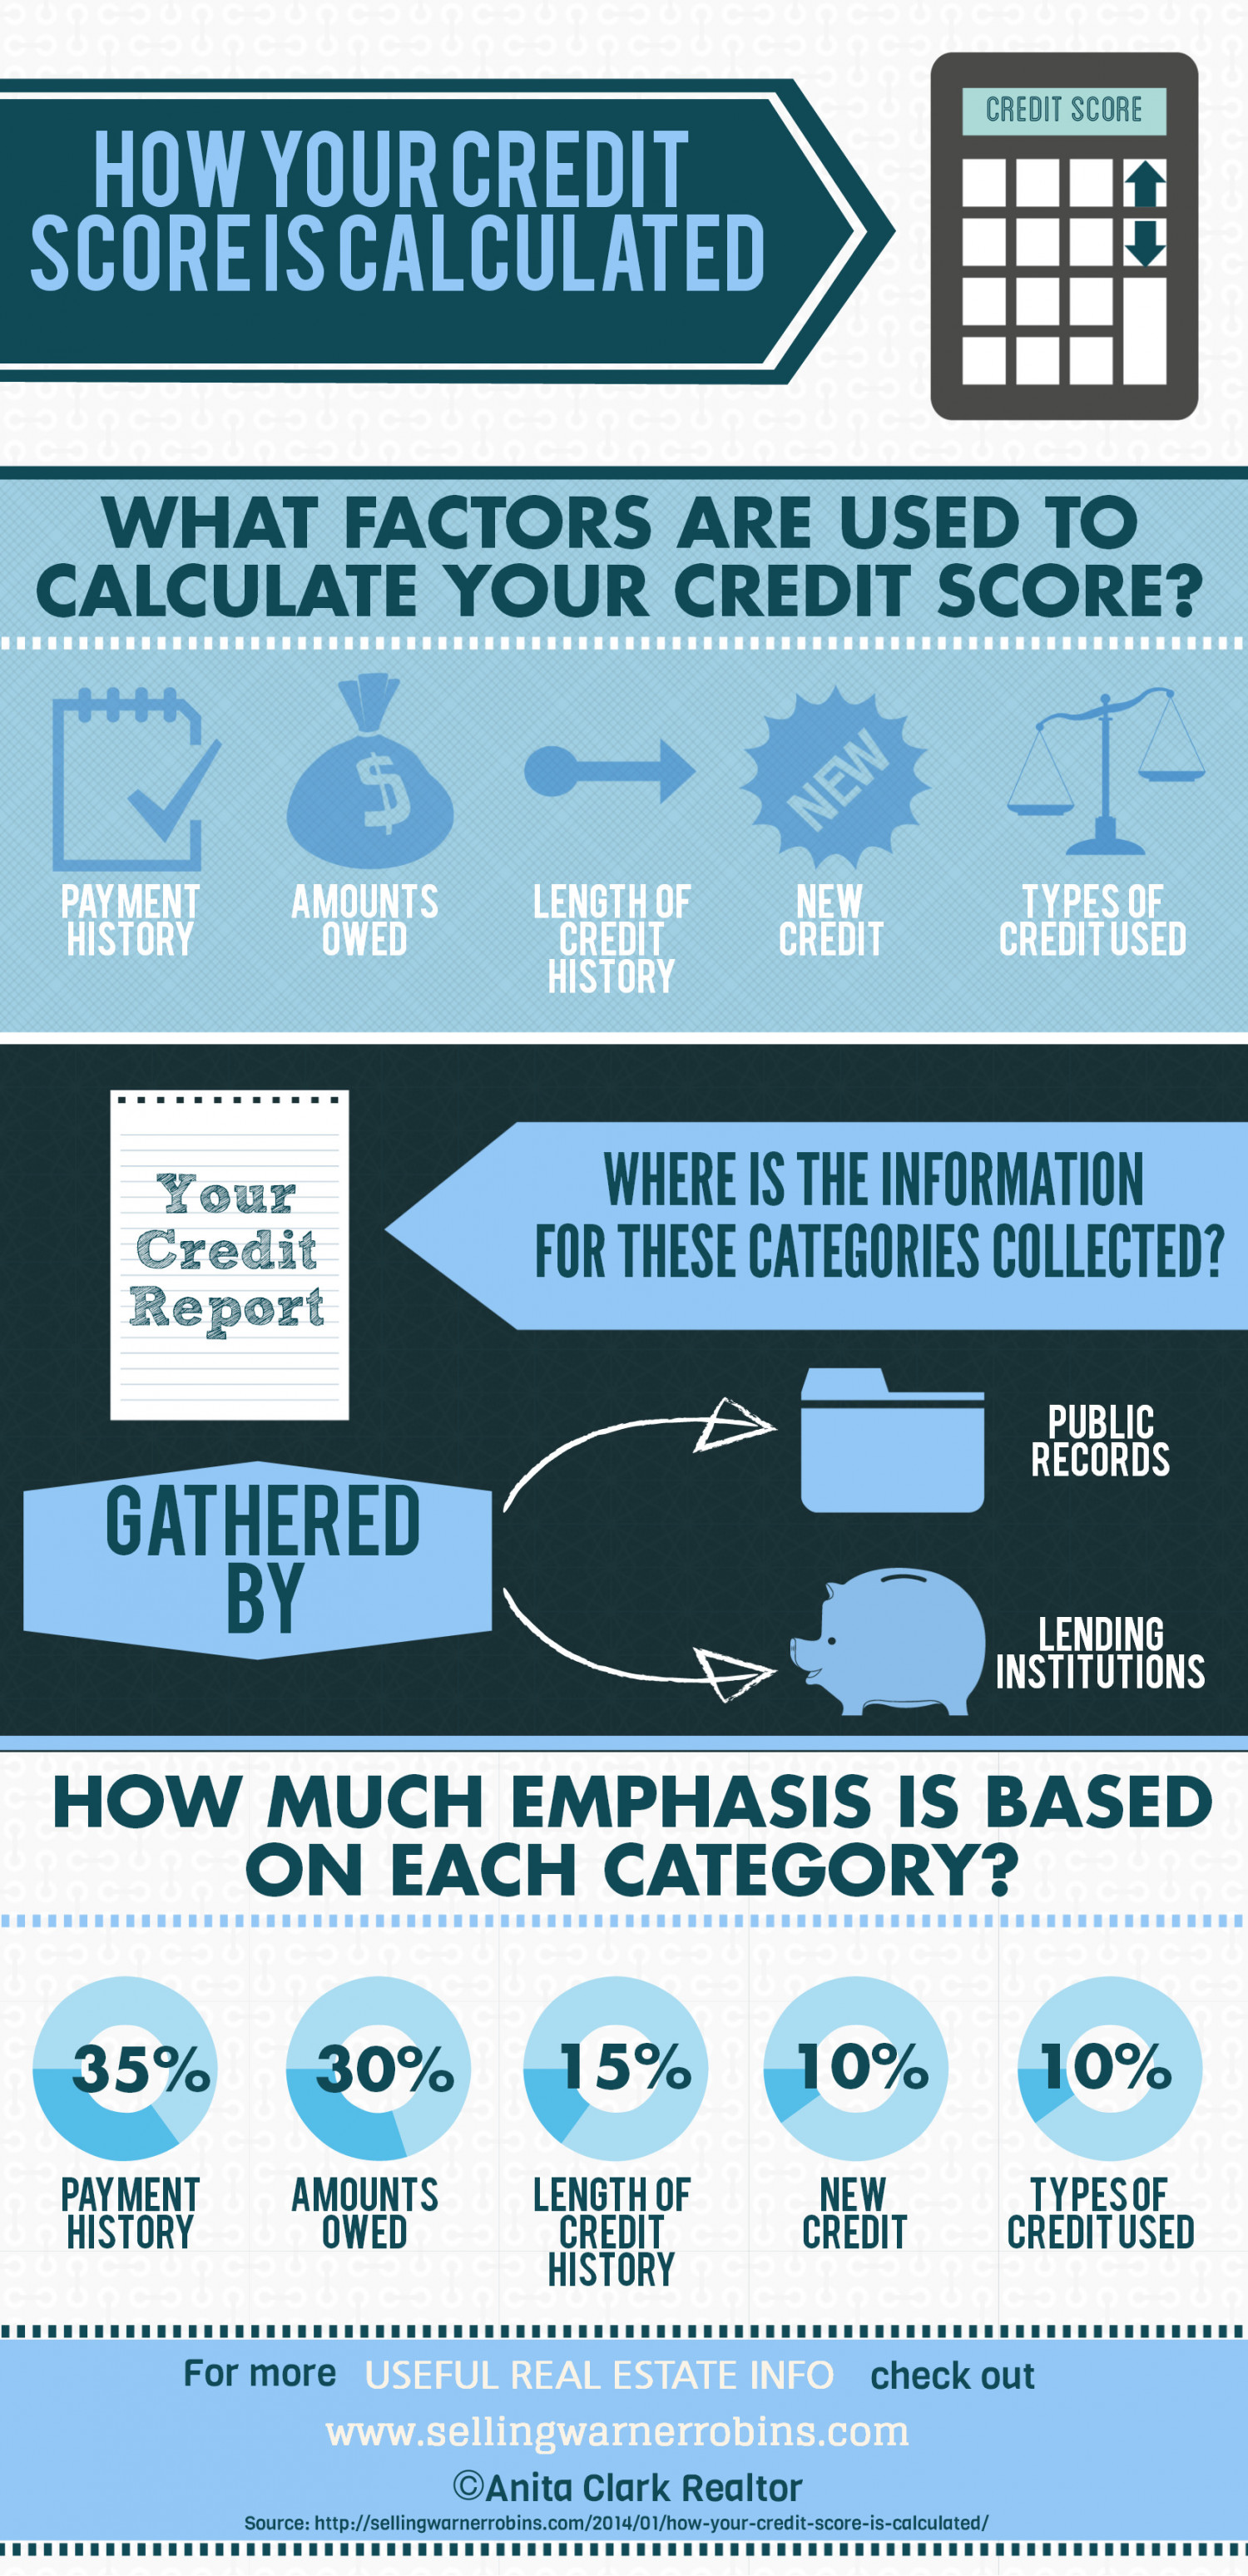 How Your Credit Score is Calculated Infographic